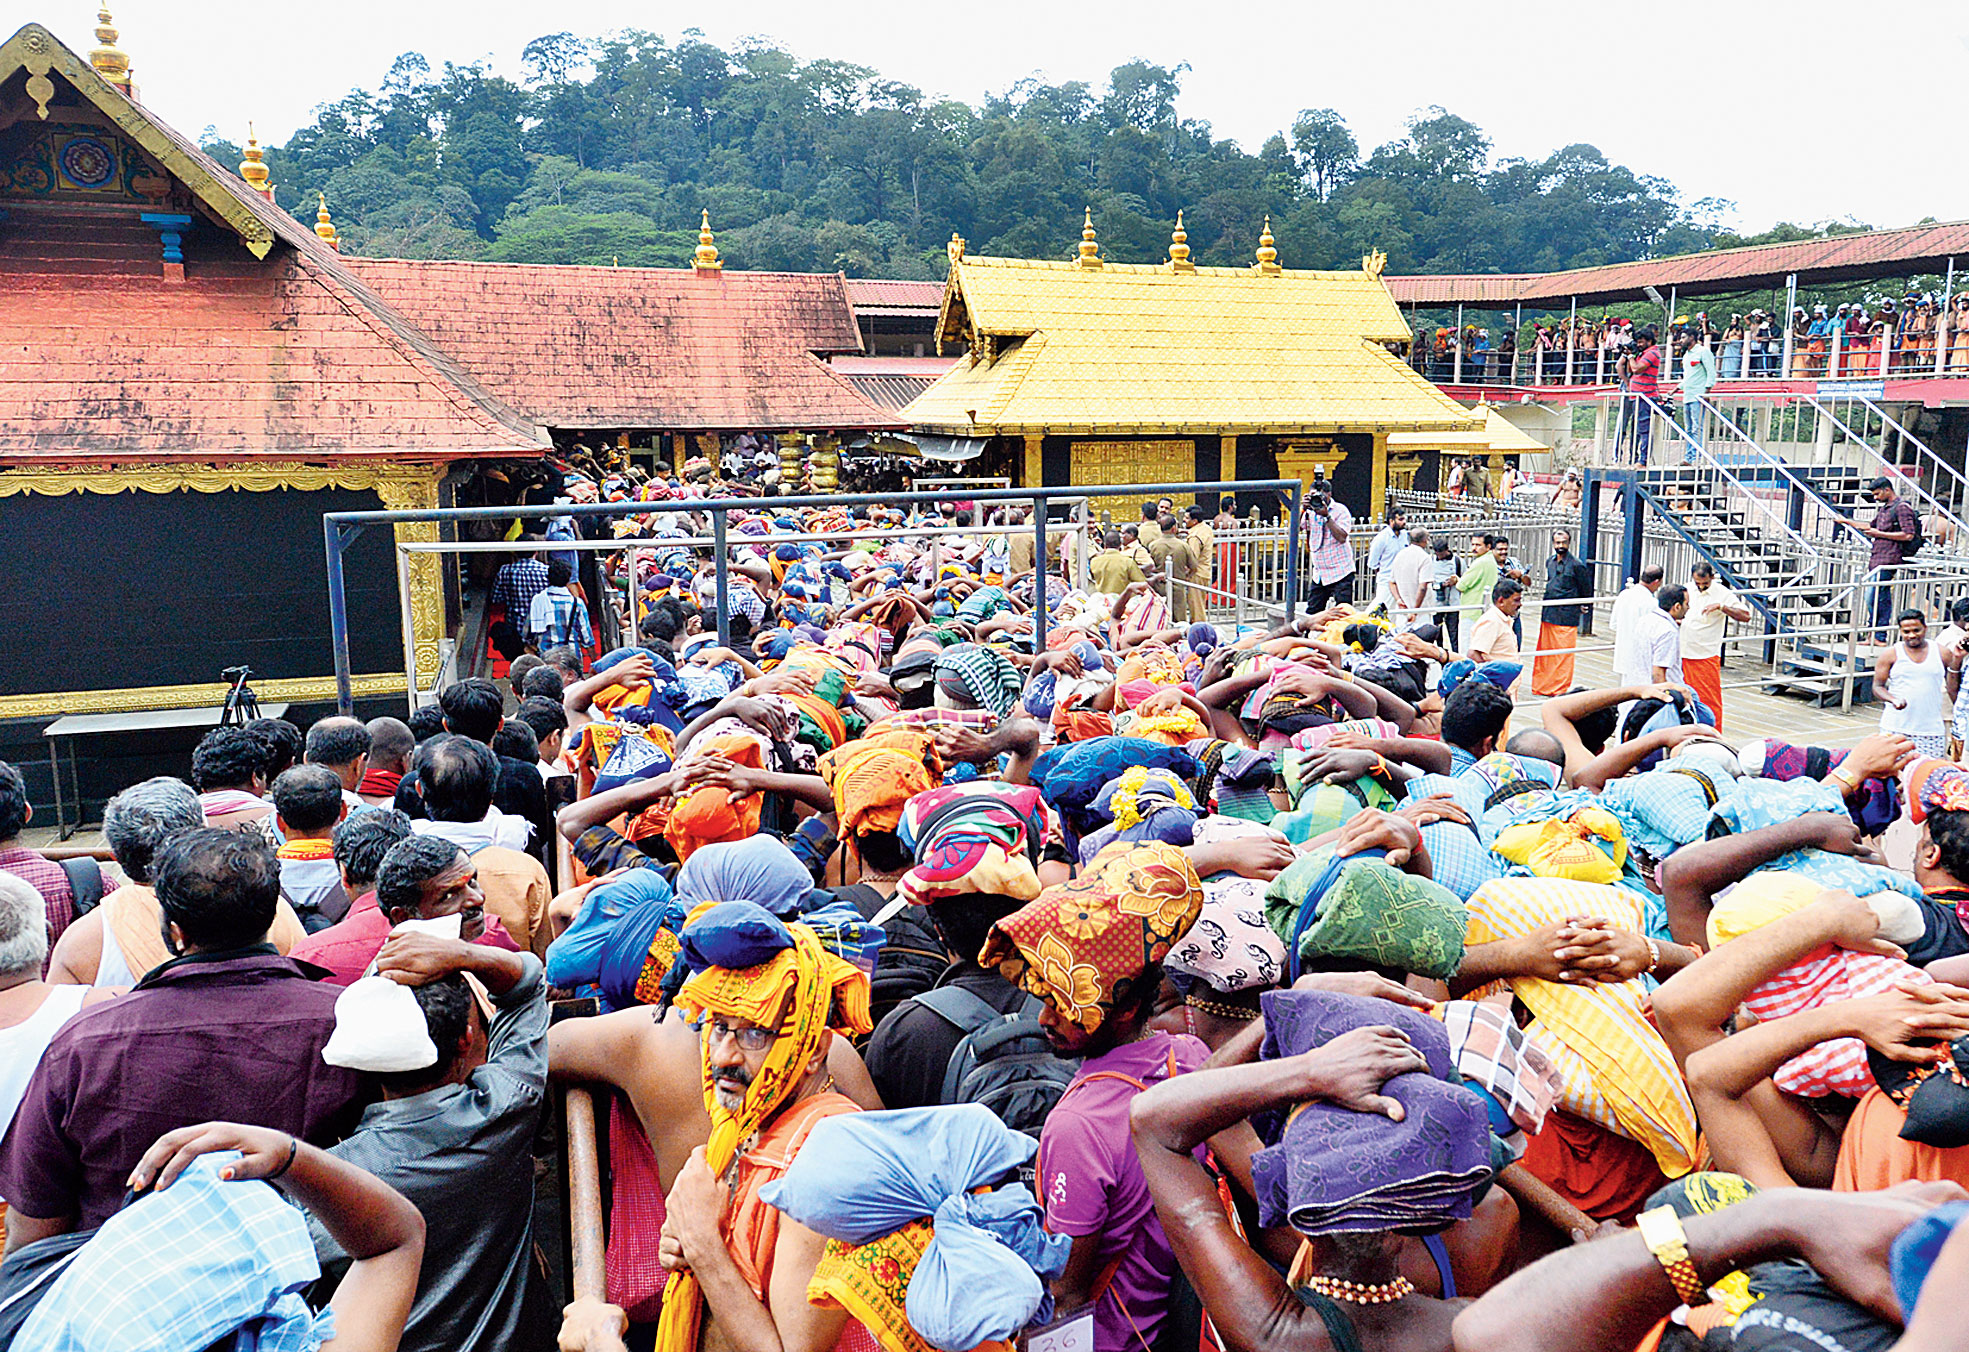 Sabarimala case dissenting view: Interference in religious practices could damage country's secular fabric